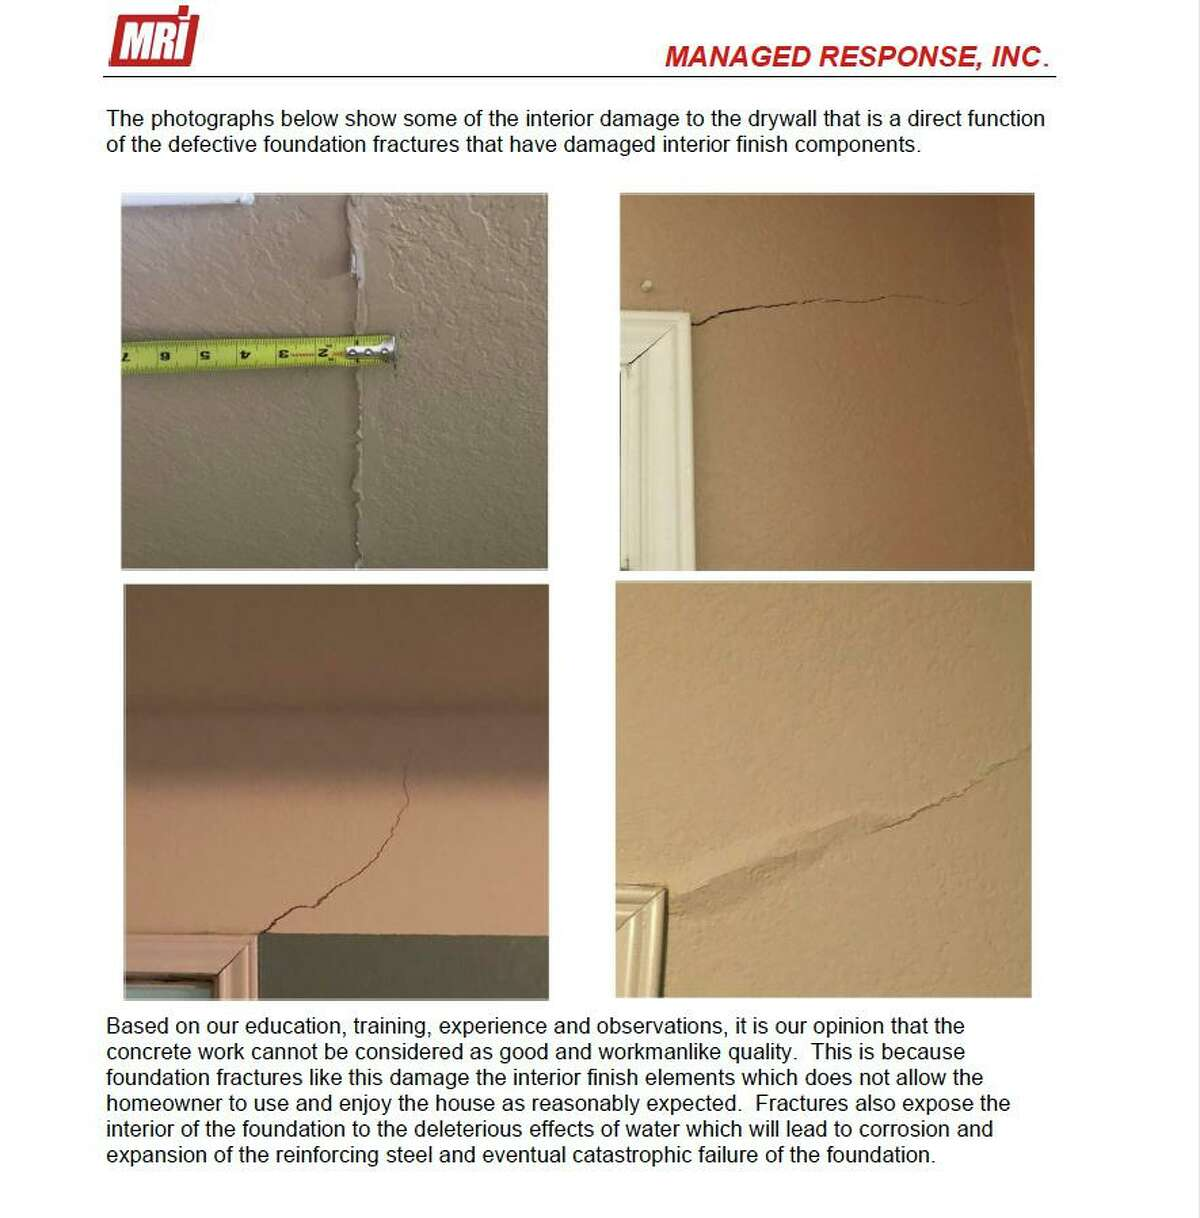 Engineer Michael D. Stall cited one or a combination of factors for foundation fractures and cracks in wallboard and tile, such as incorrect soil preparation, incorrect concrete mix, incorrect placement of reinforcement steel or poor workmanship.